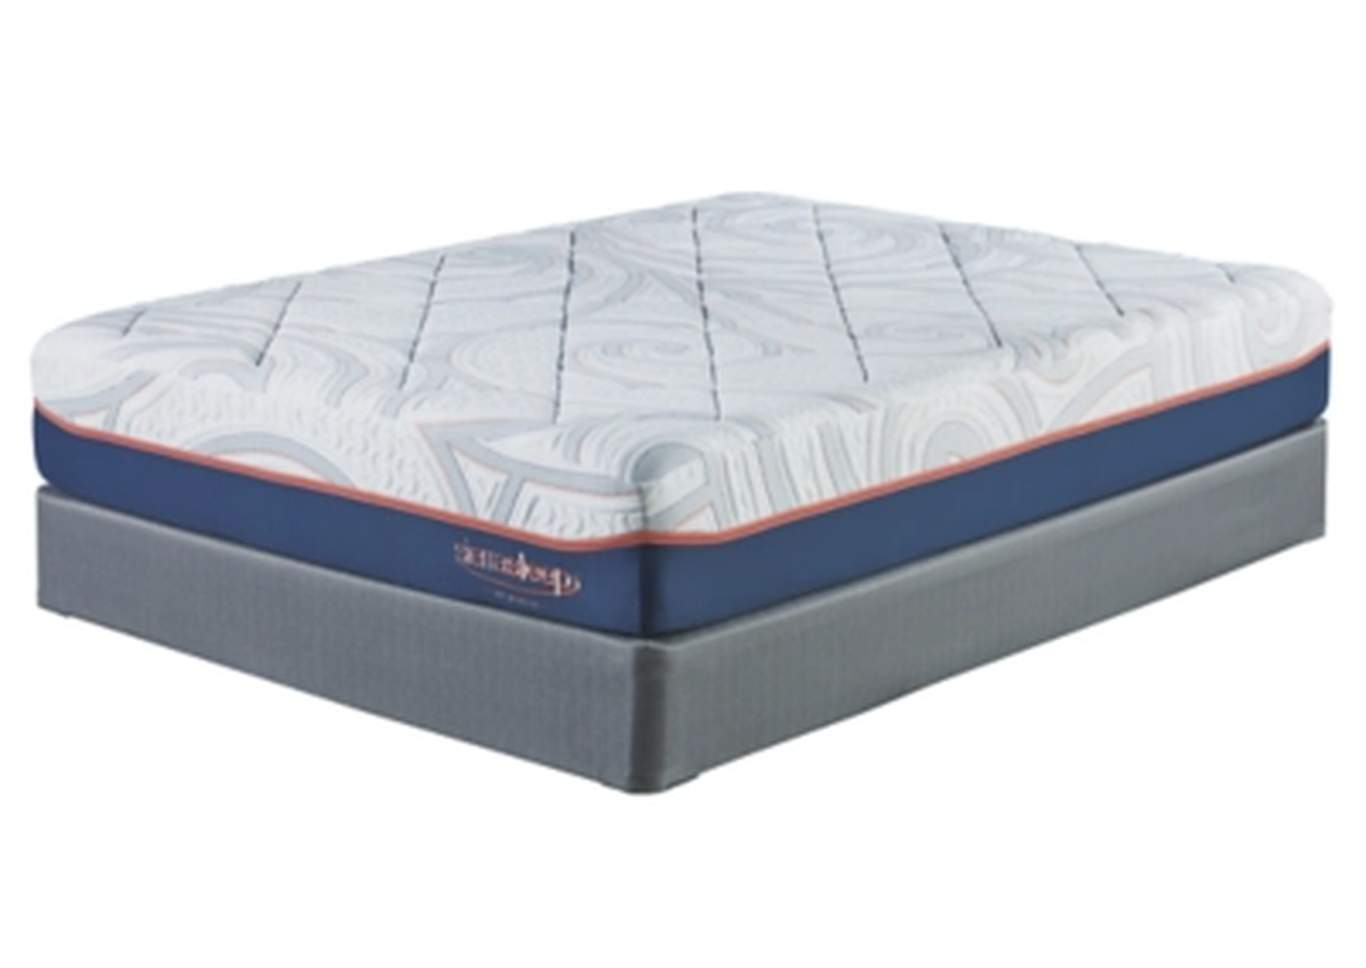 12 Inch MyGel California King Mattress,Sierra Sleep by Ashley